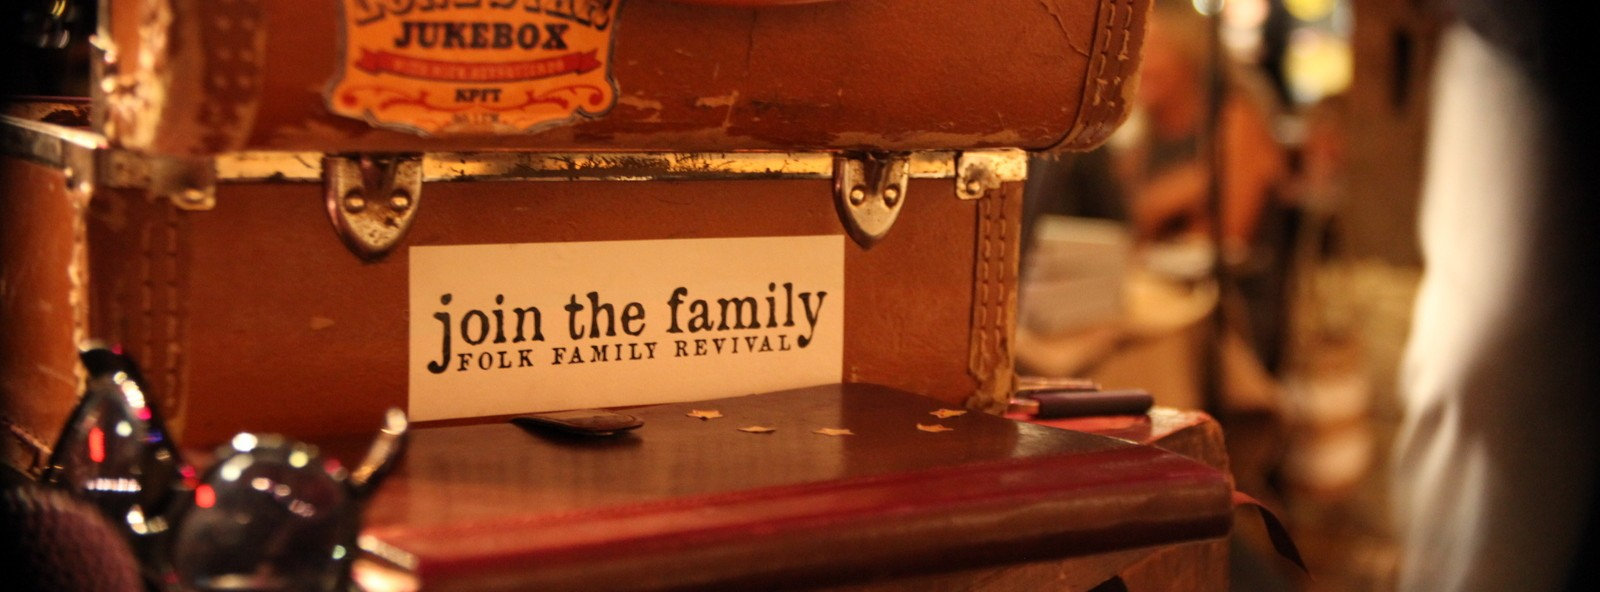 Real Life Gets A Visit from the Family, Folk Family Revival, that is